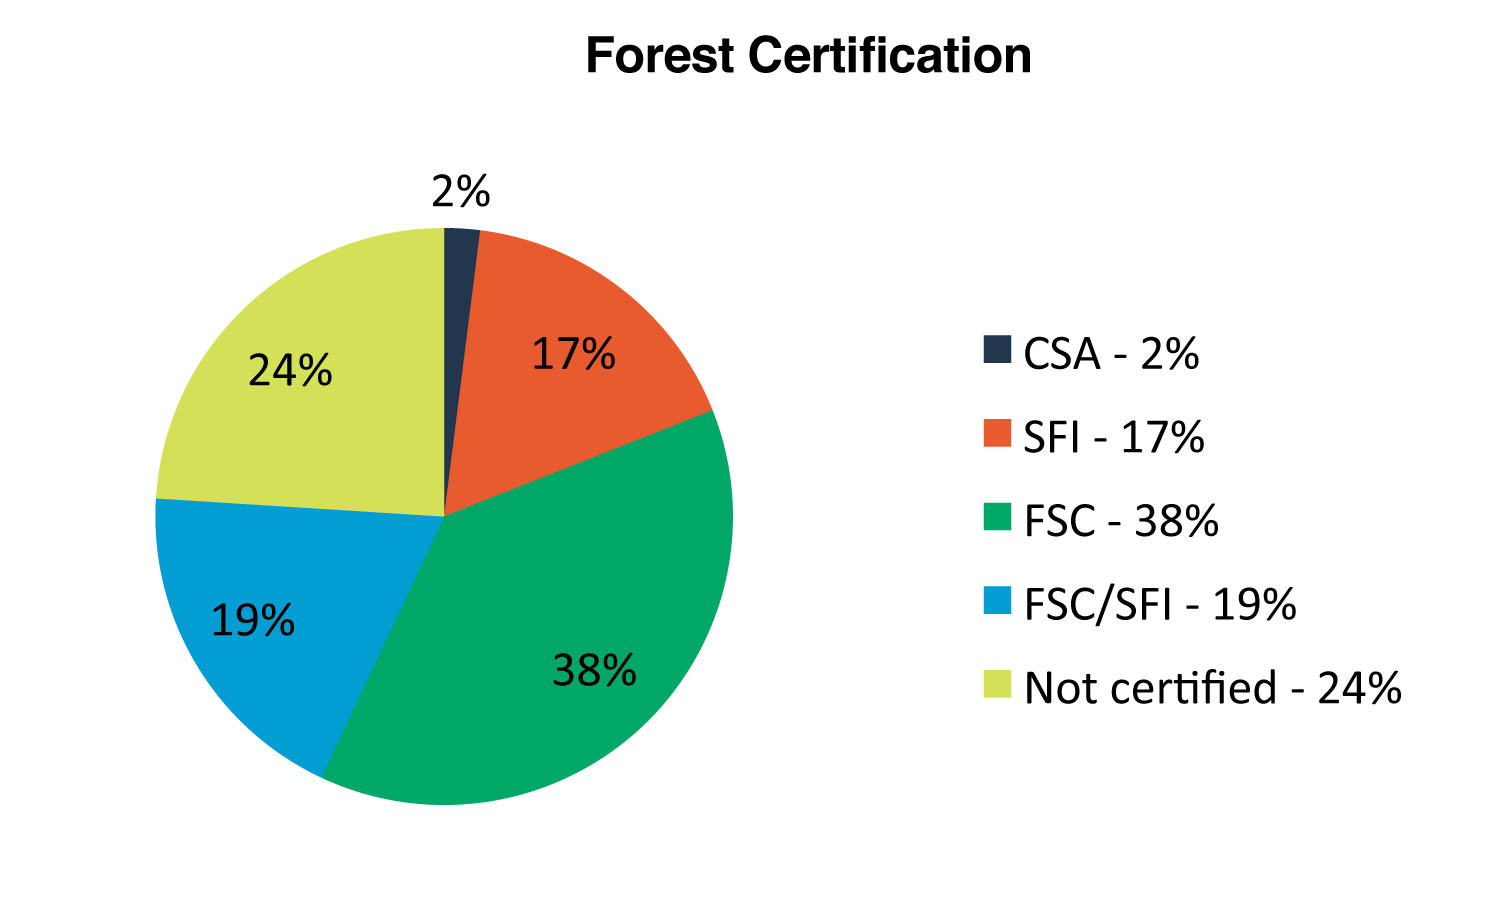 Figure 2. Percent of management units certified under each standard in 2013 (OMNR 2014).